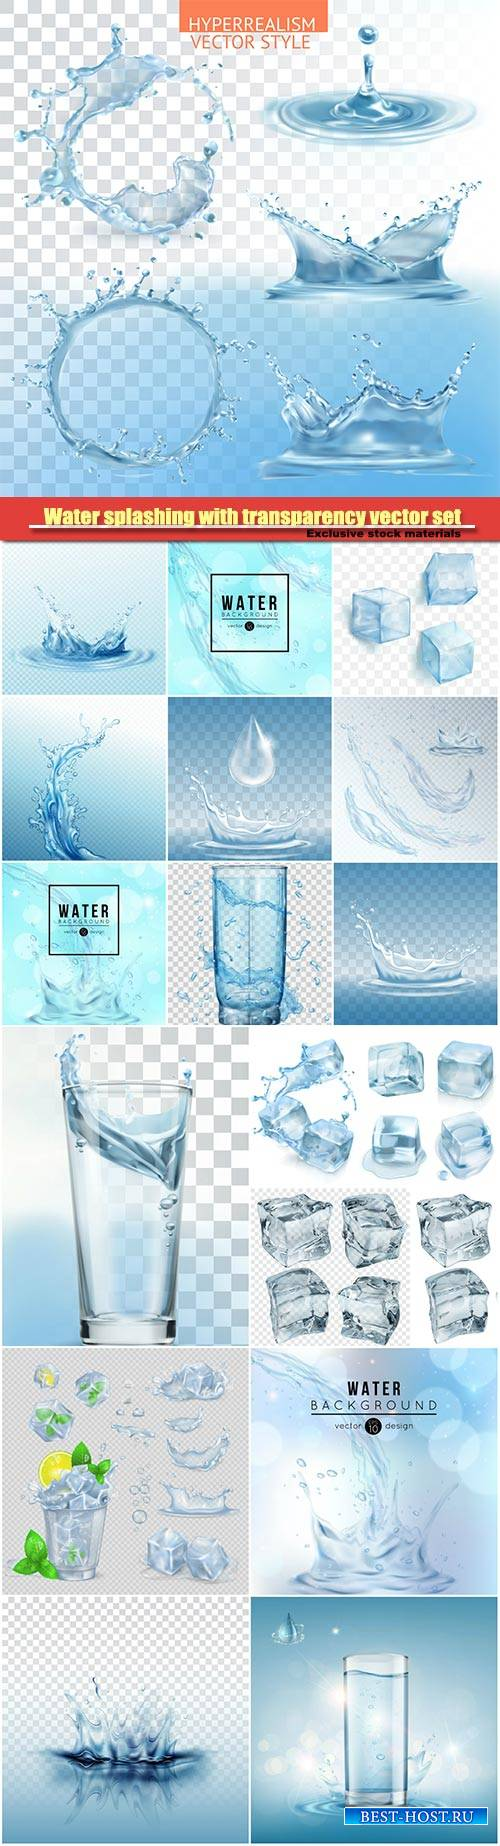 Water splashing with transparency vector set, glass with water, green mint  ...